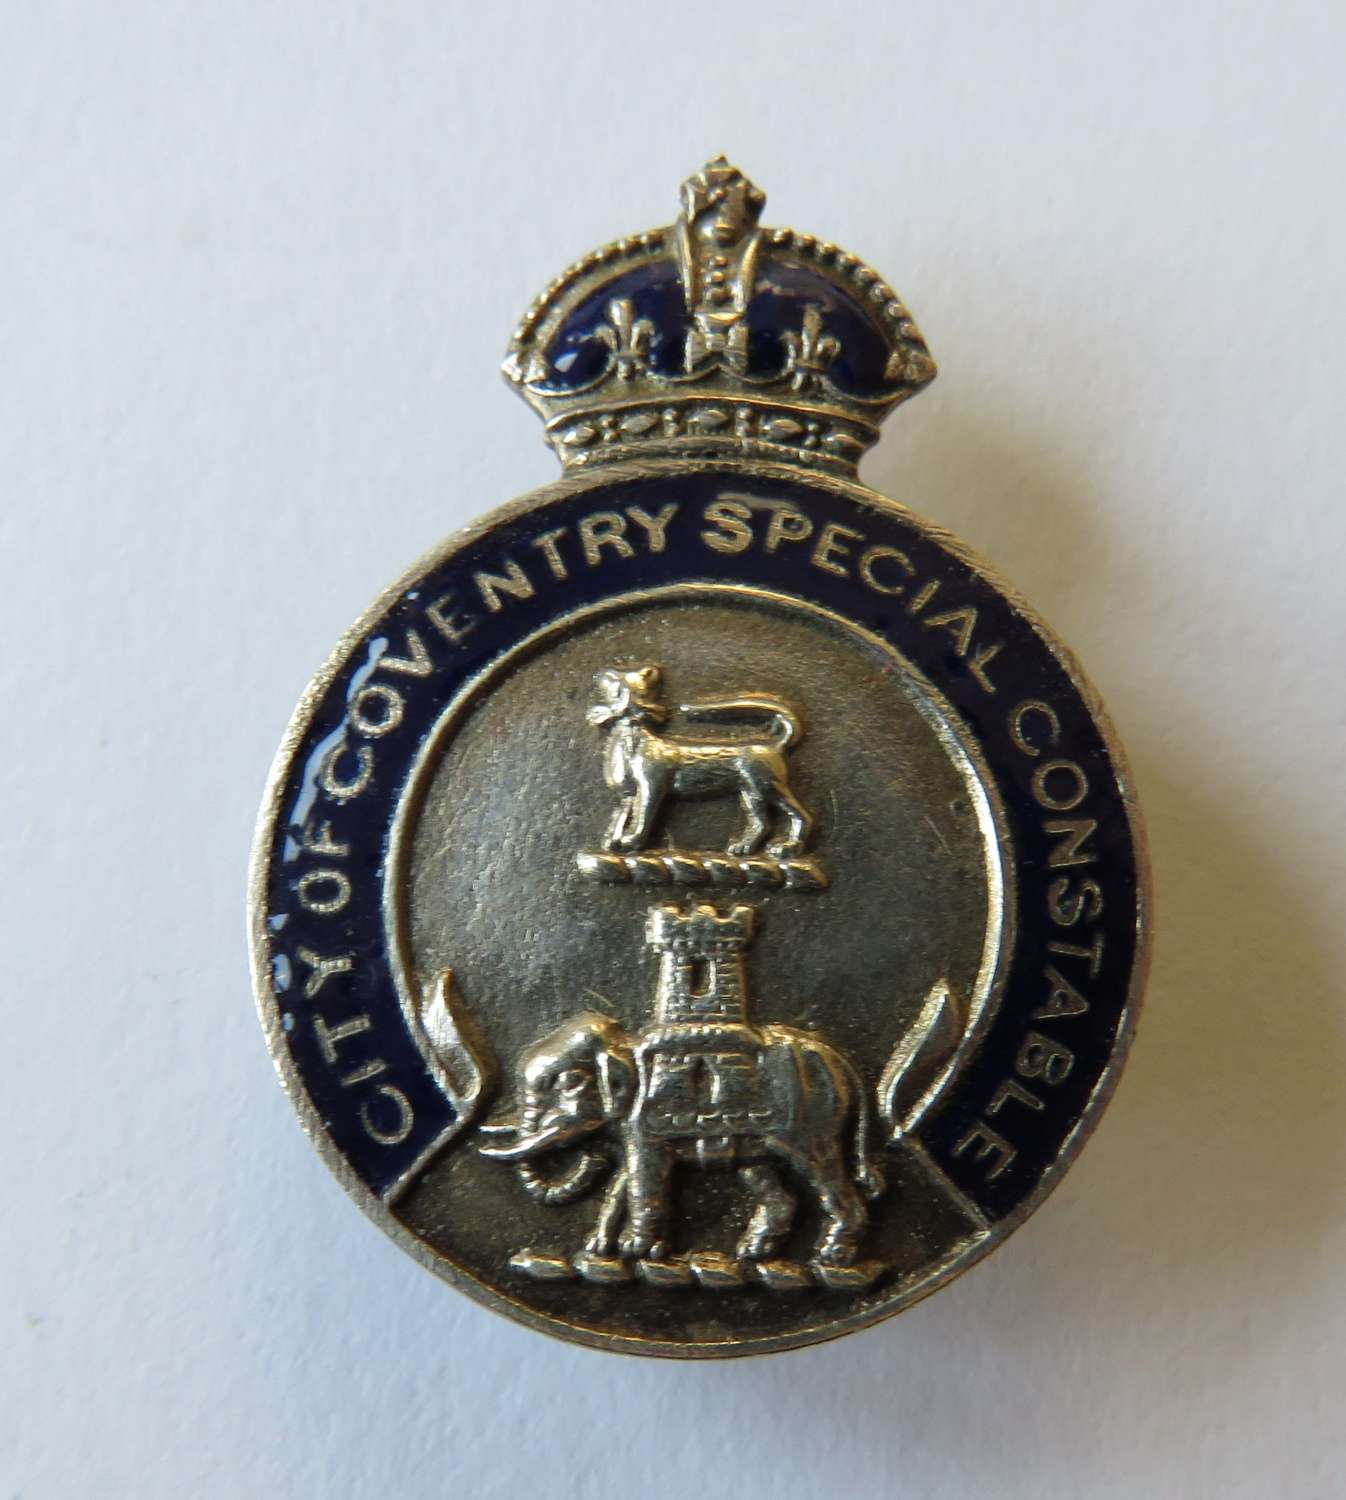 Coventry Special Constabulary Lapel Badge